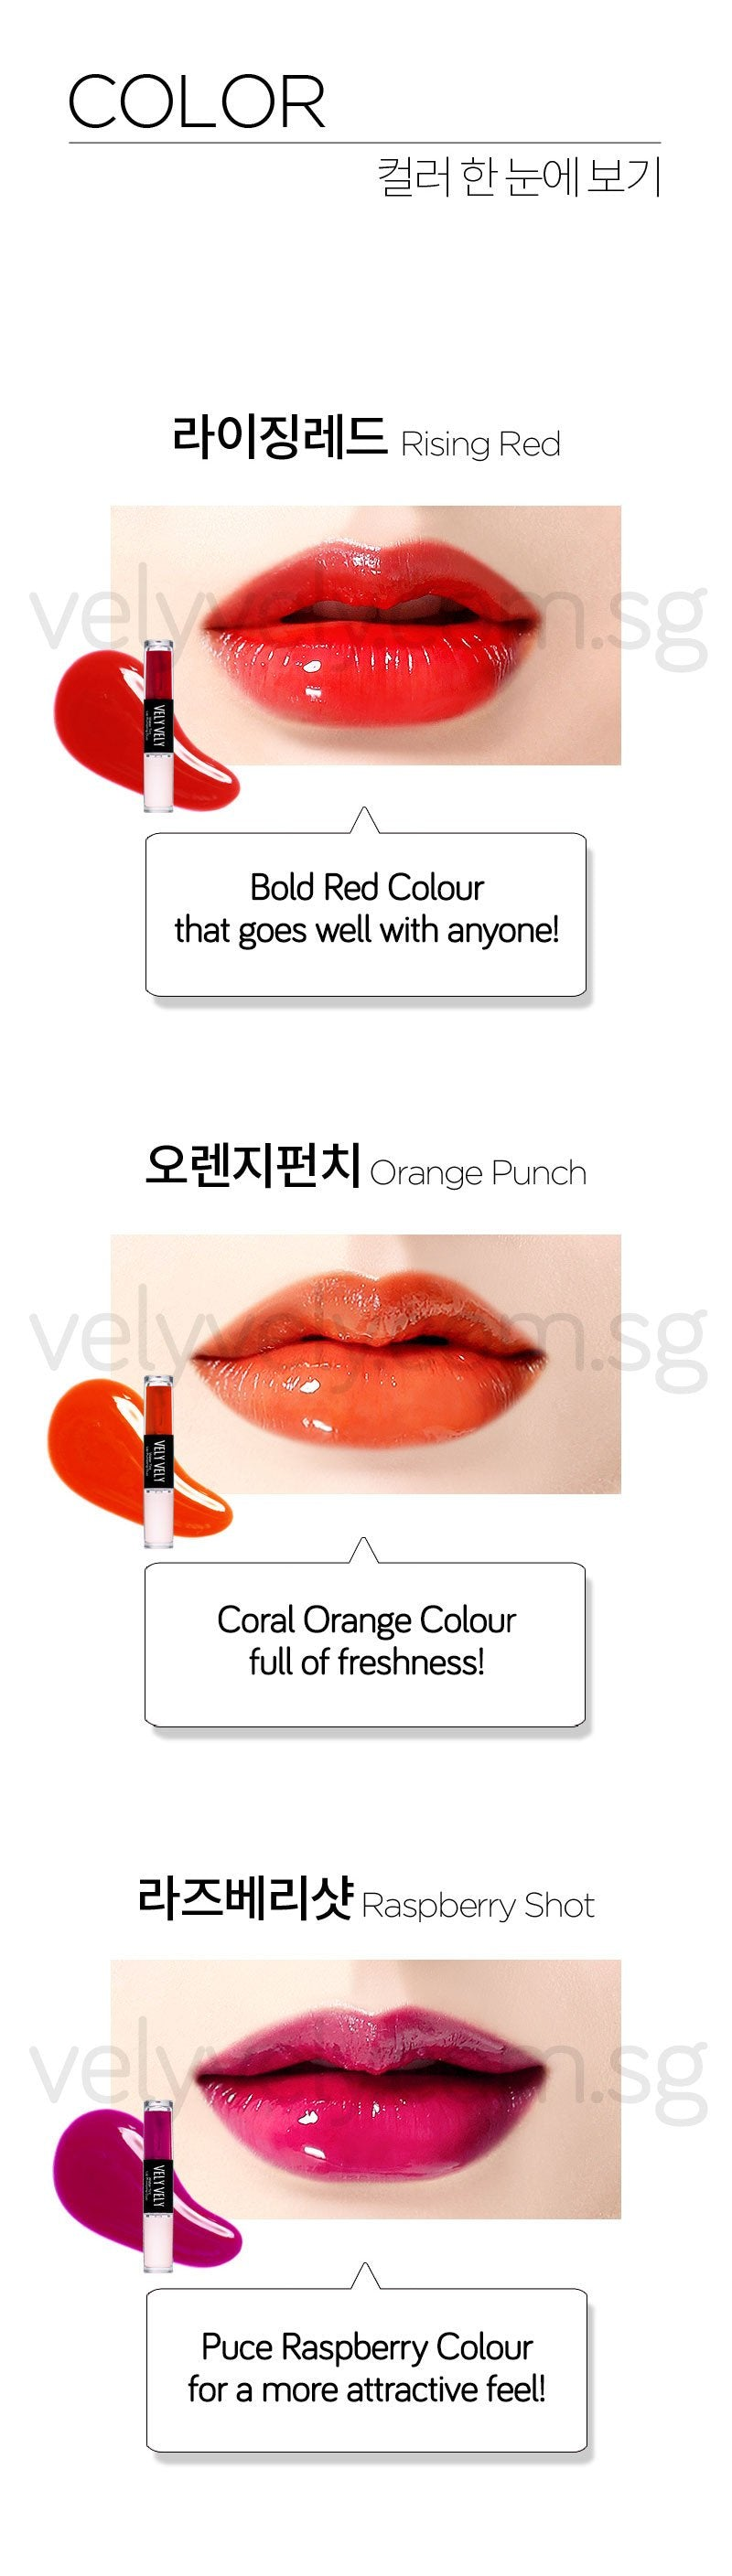 Korea's Cosmetic Brand, Vely Vely Water Tint Lip Pumping Duo lip swatches